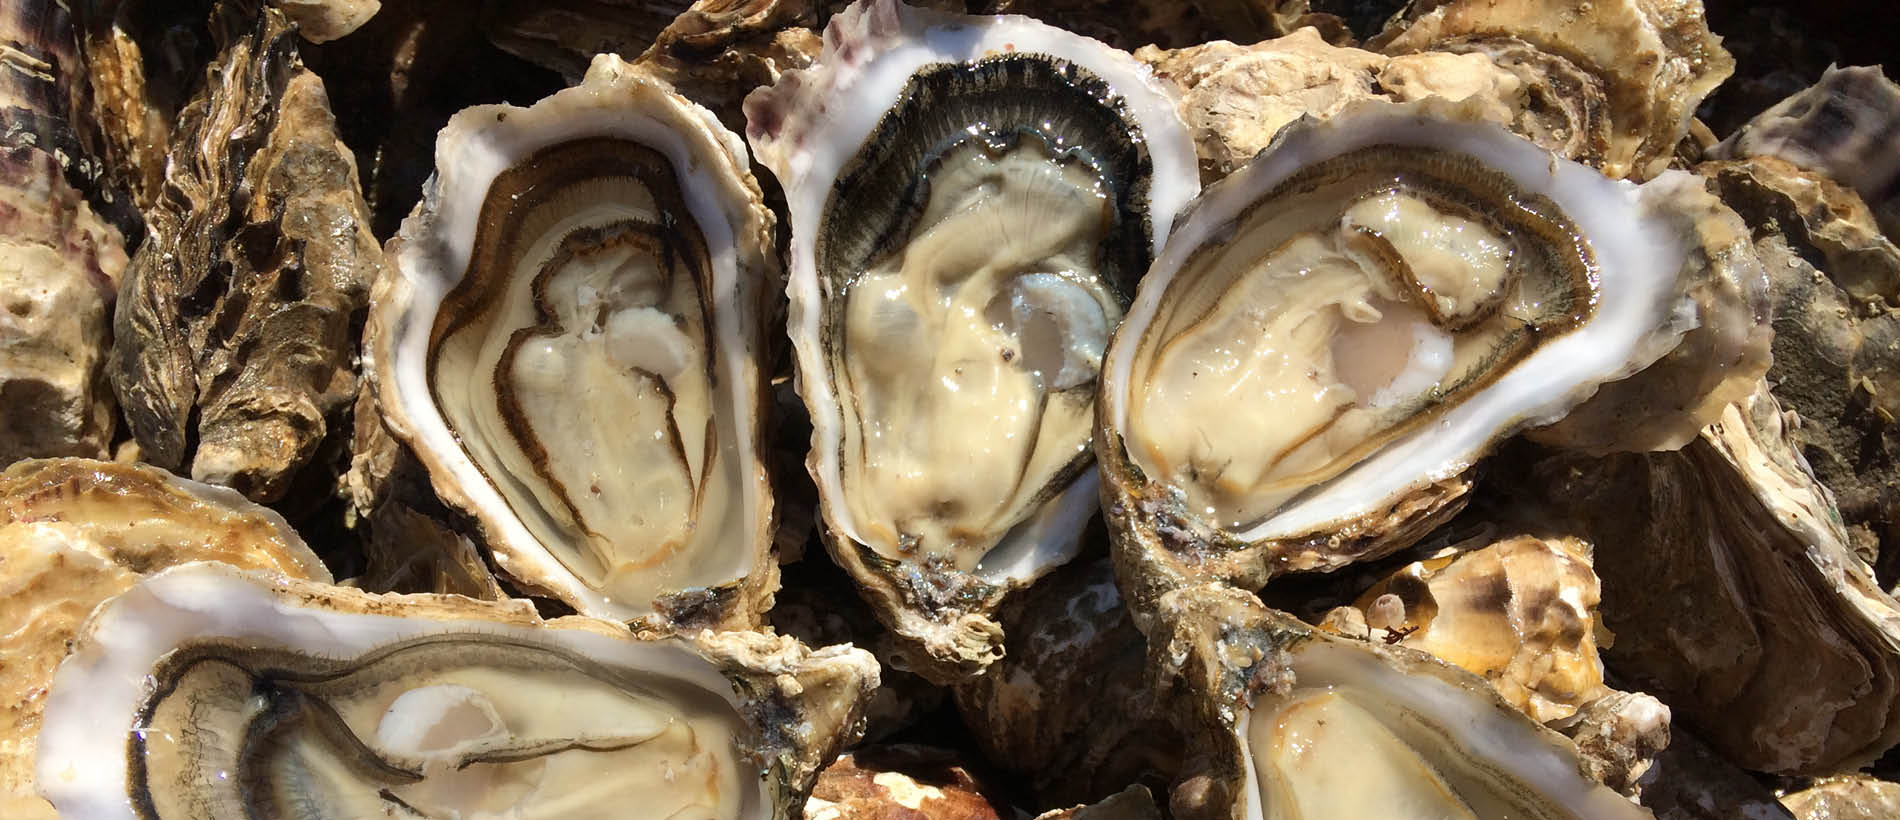 Oysters and periwinkles from Brittany